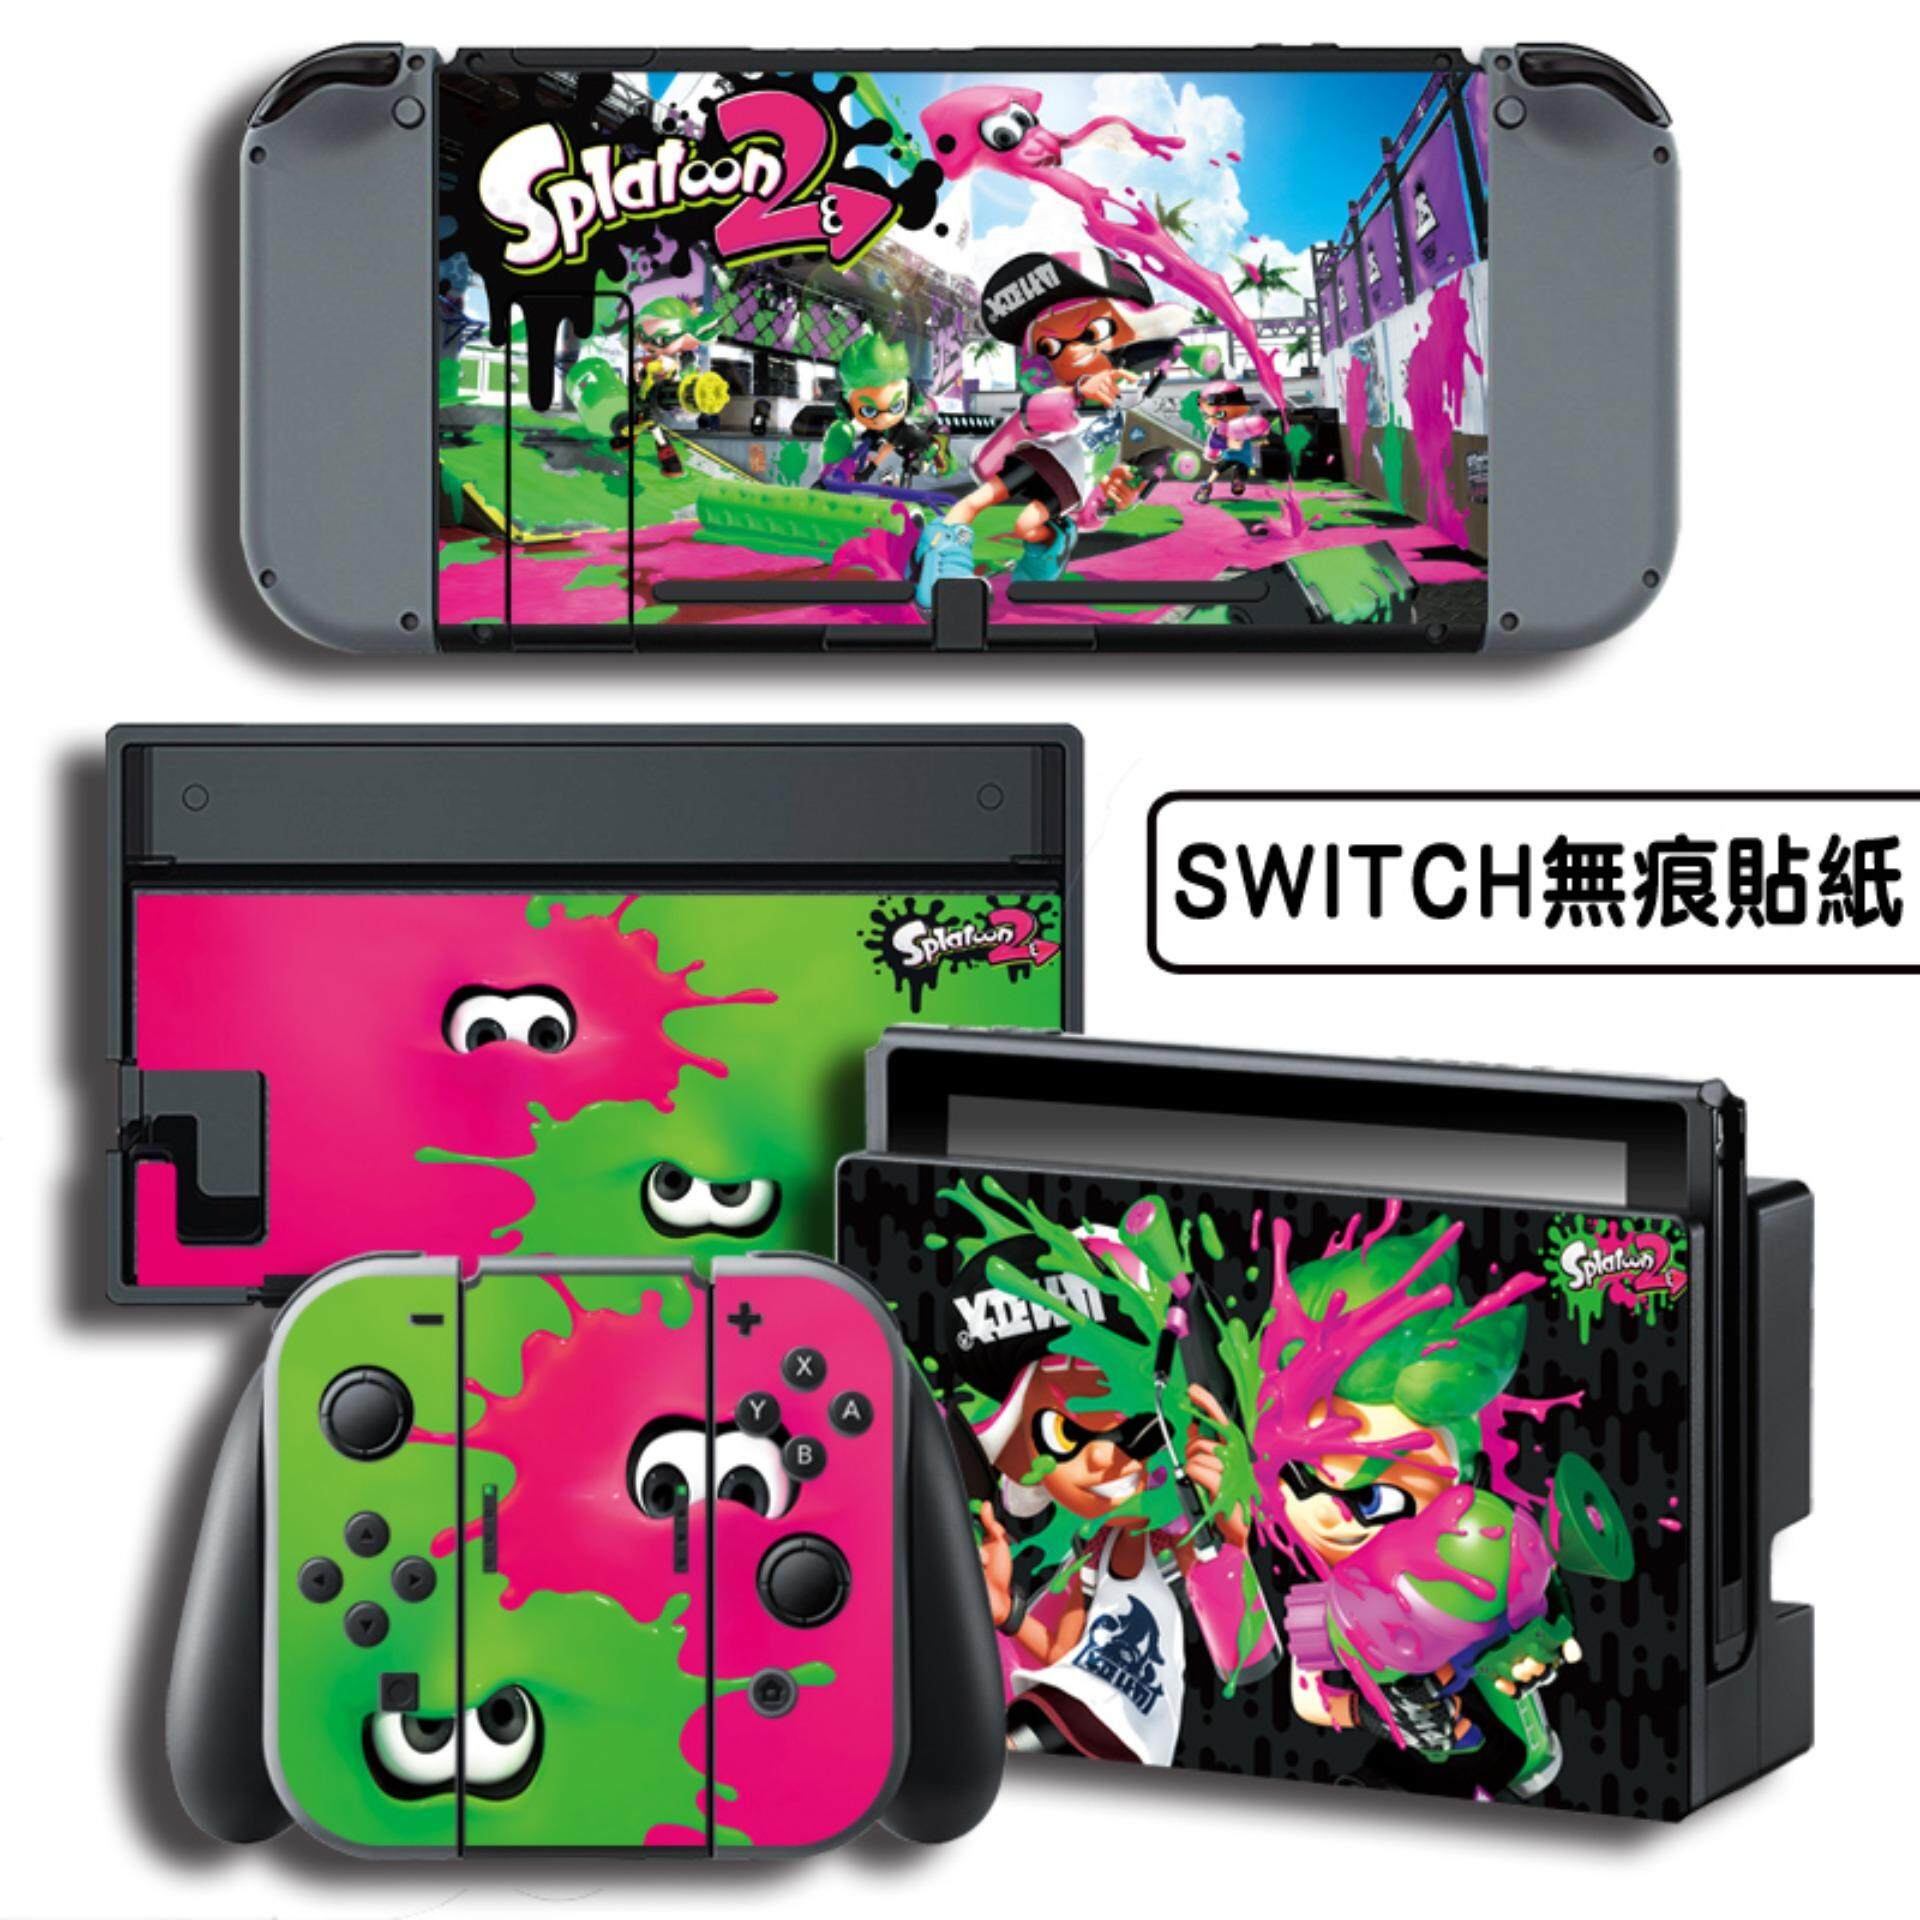 Nintendo Switch Stickers Splatoon Price In Singapore Quick Pouch Splatoon2 Vinyl Skin Sticker Decal Cover For Console Controller Joy Con Intl